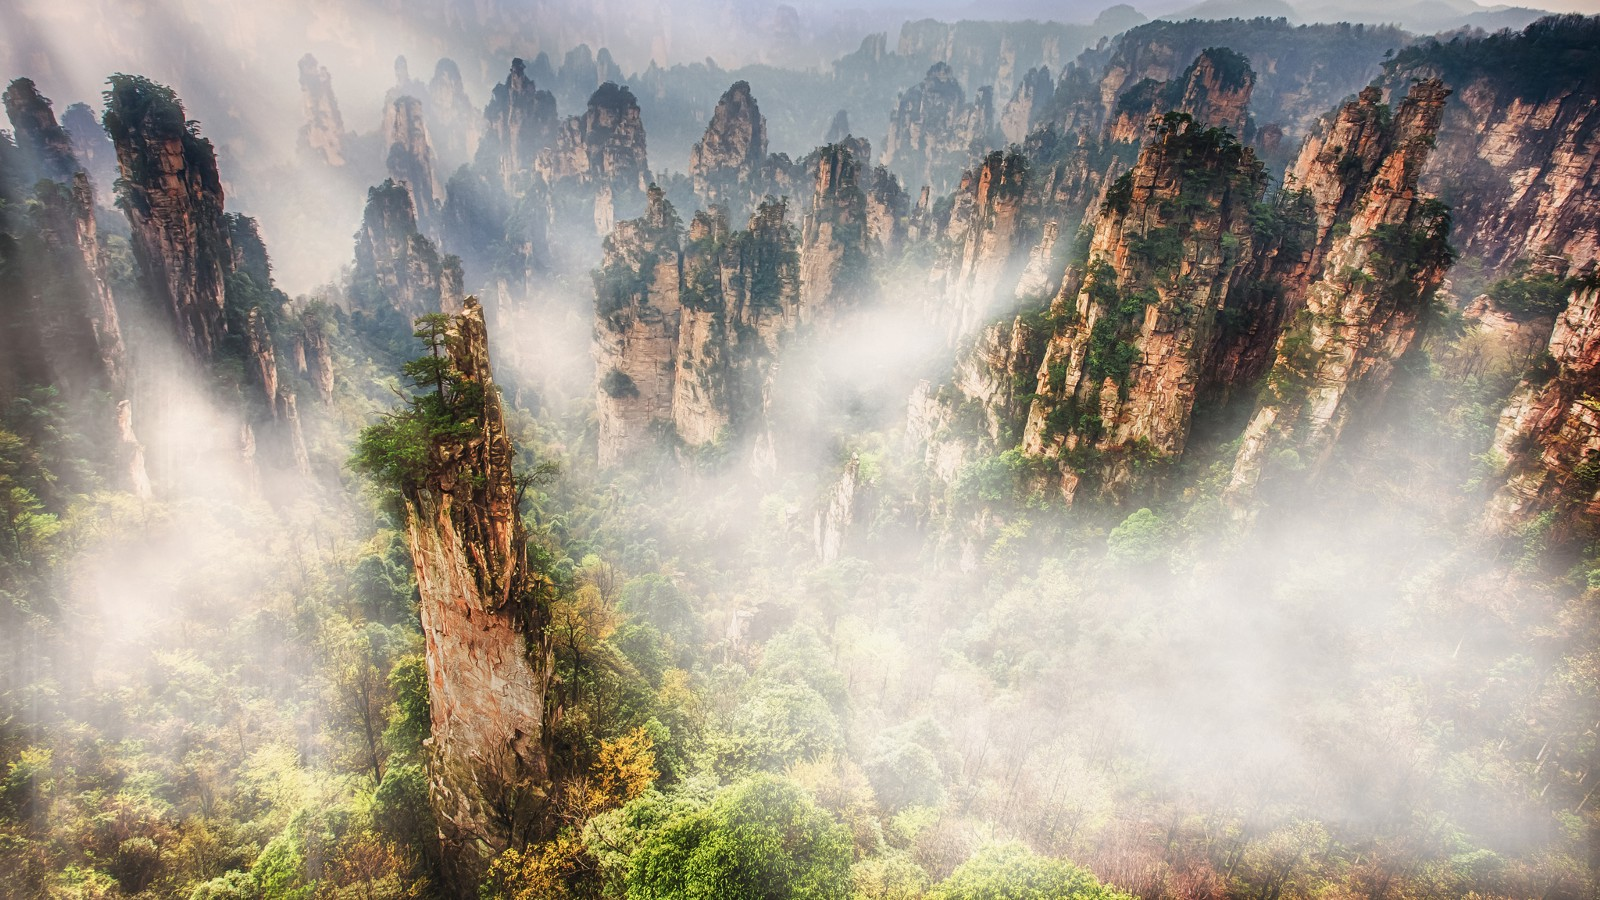 Rock formations in the Tianzishan area, Zhangjiajie National Park in Hunan province, China